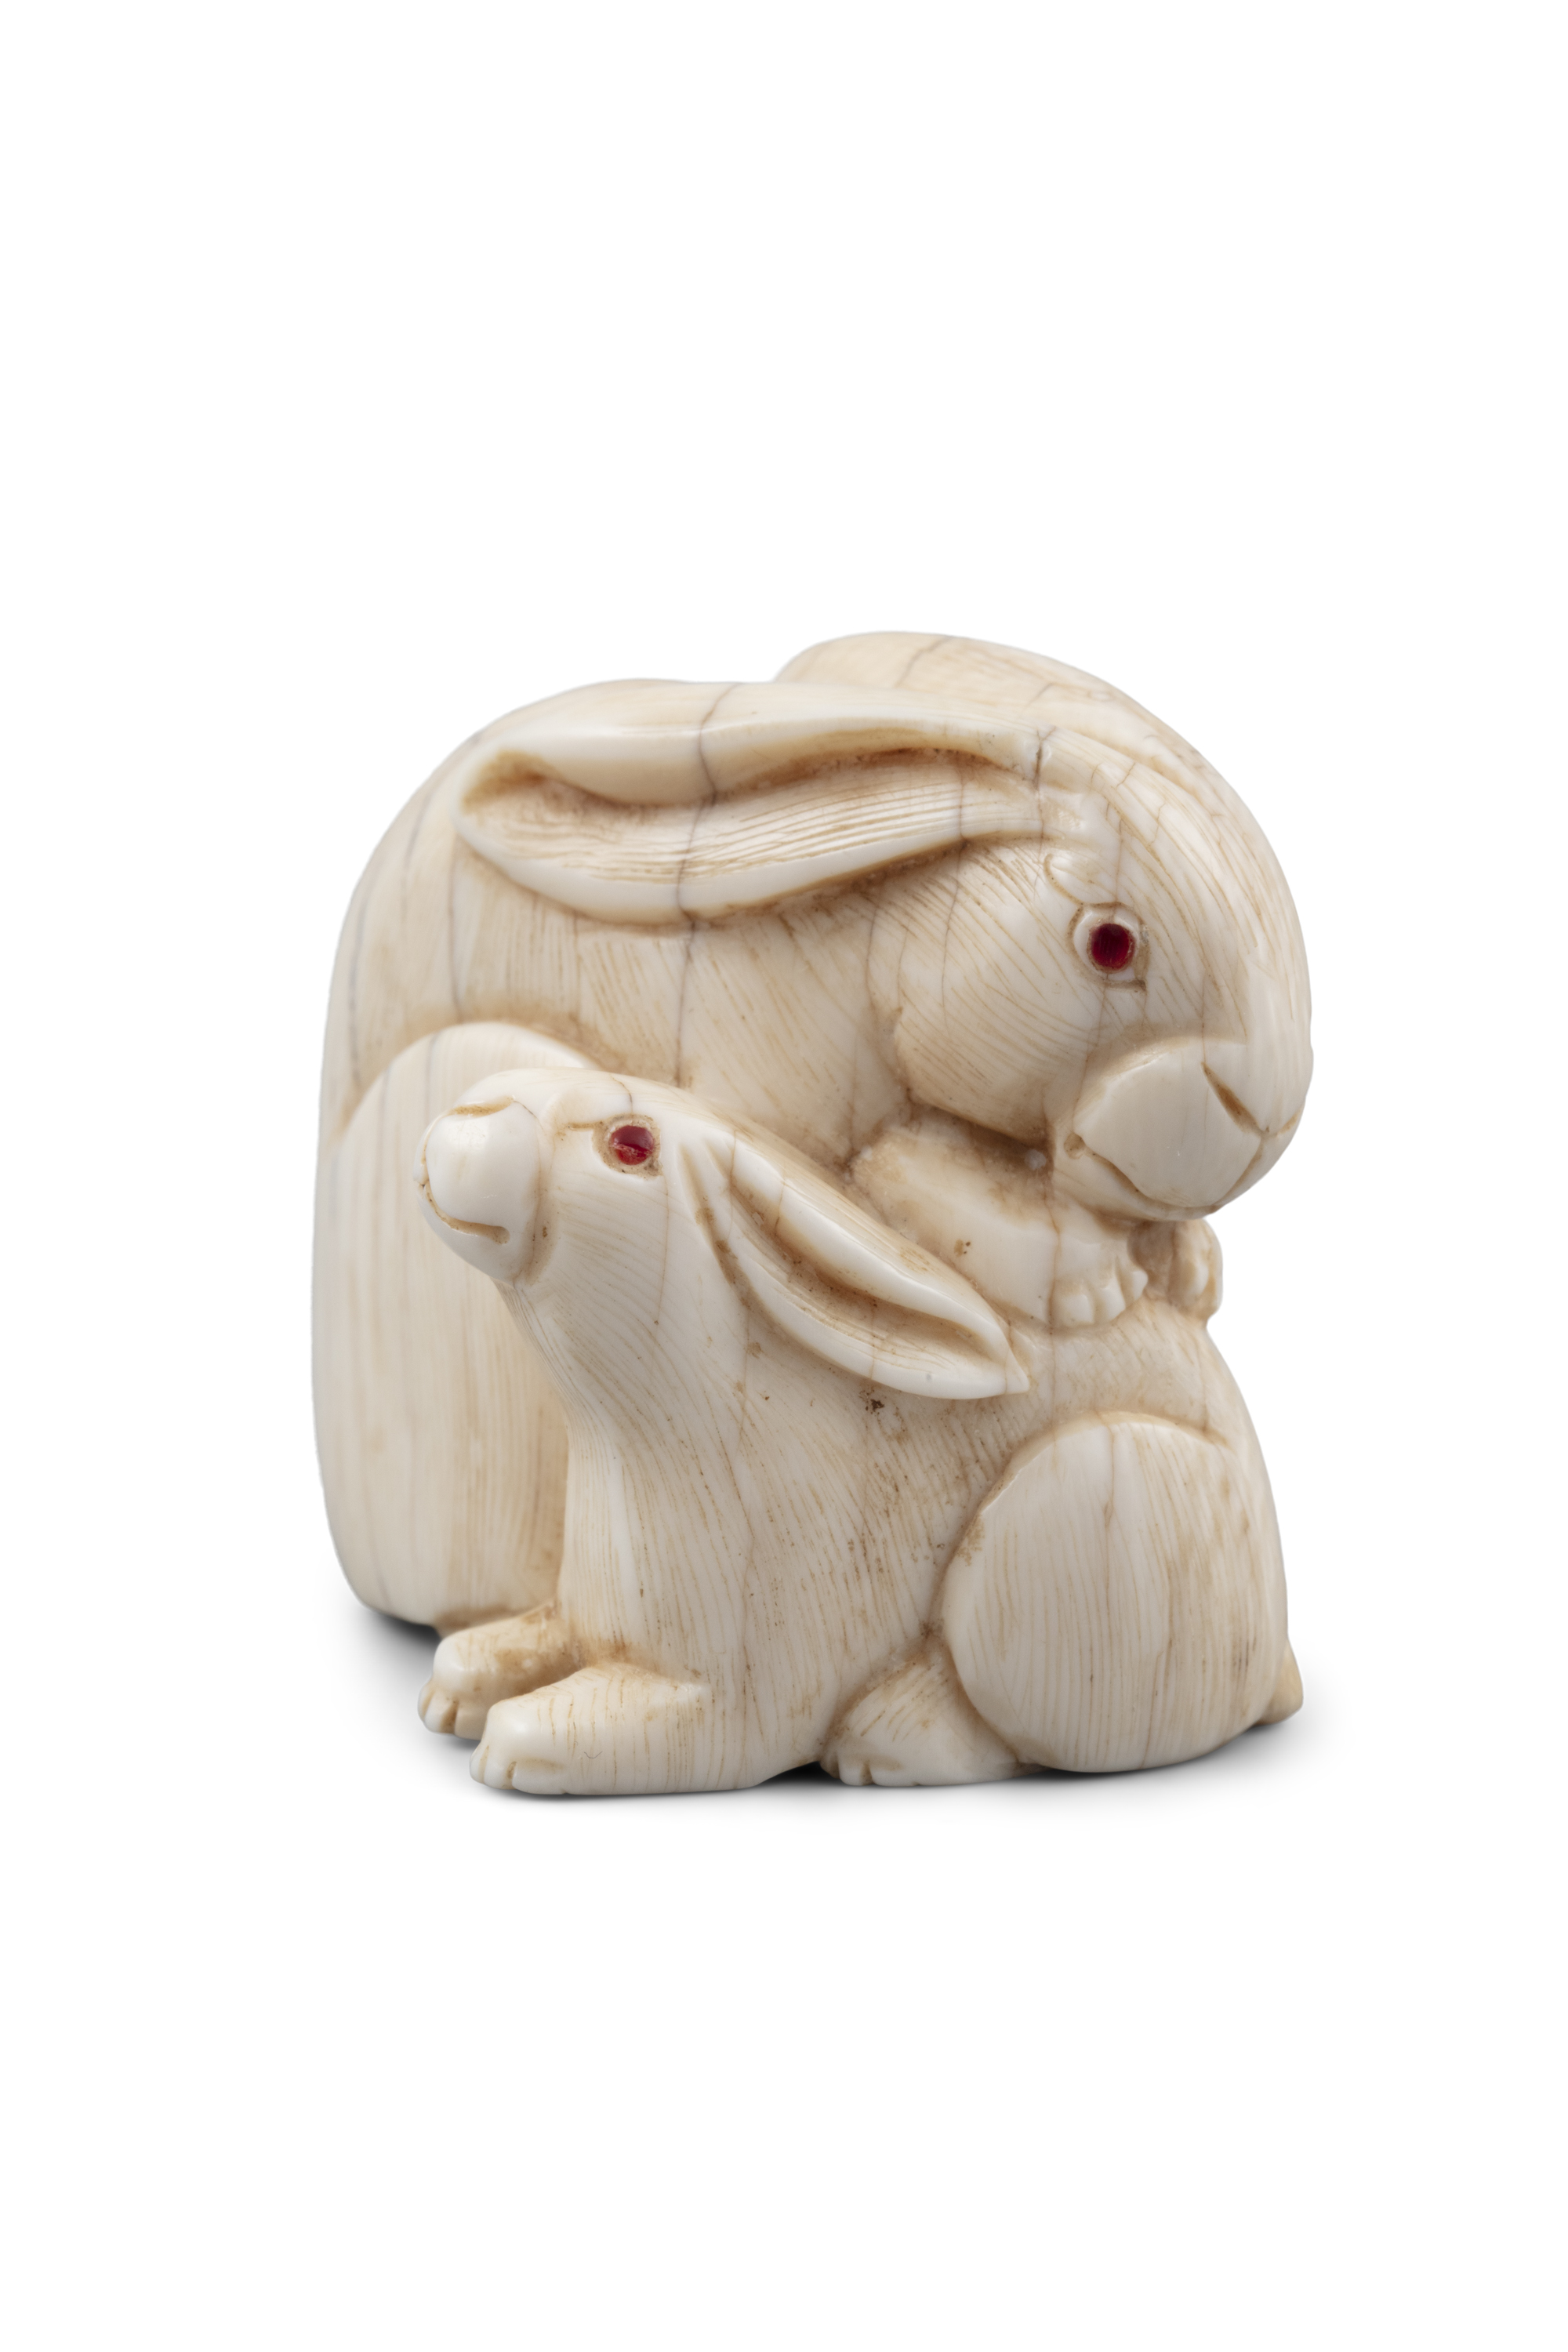 *A SIGNED IVORY 'TWO COILED RABBITS' KATABORI NETSUKE Japan, 19th century With inlaid eyes.